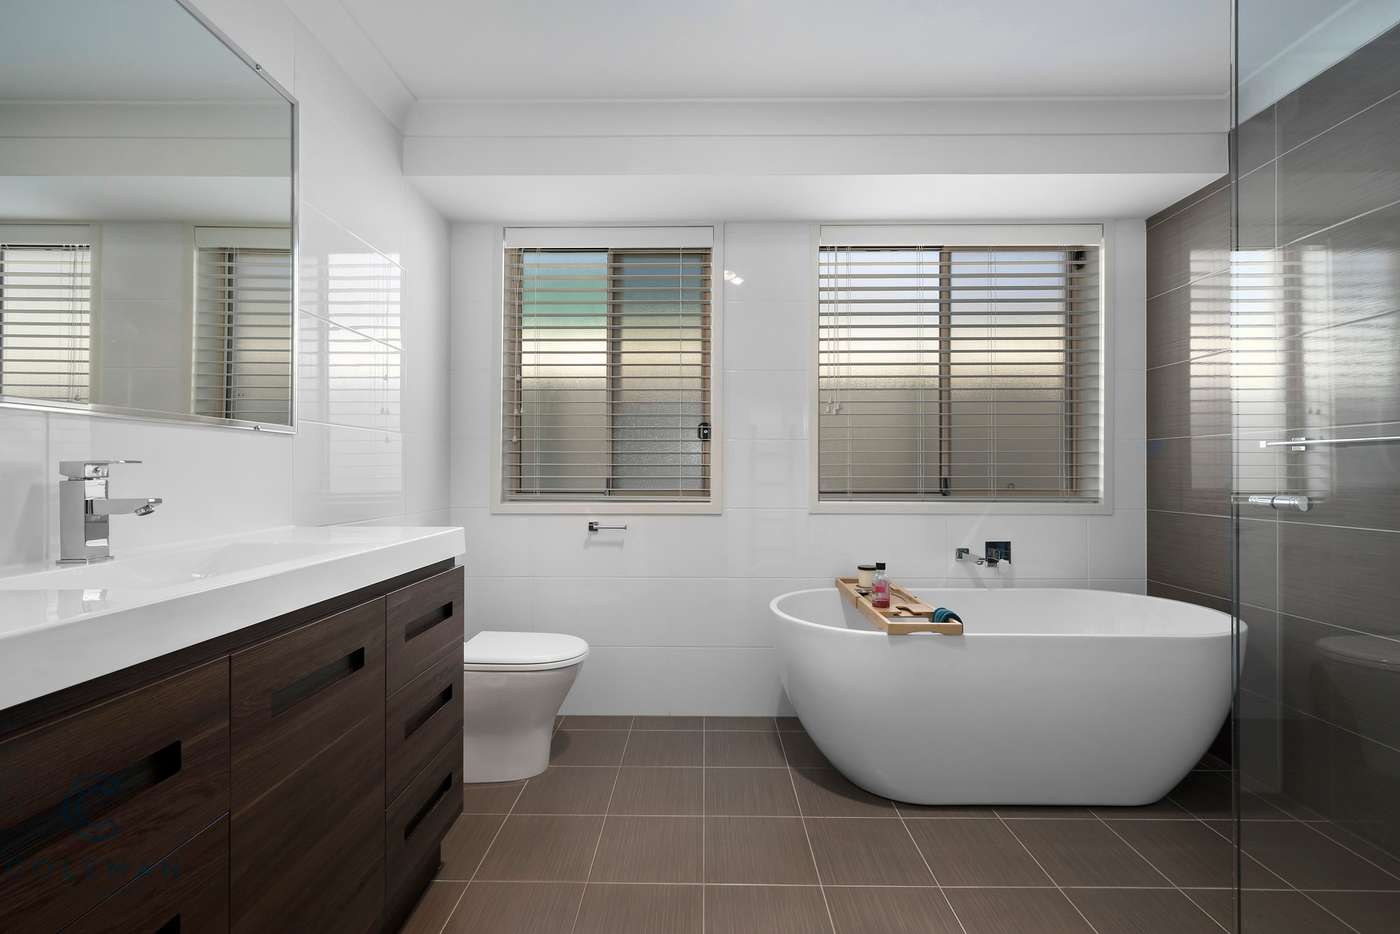 Fifth view of Homely house listing, 9 Anchorage Circle, Summerland Point NSW 2259